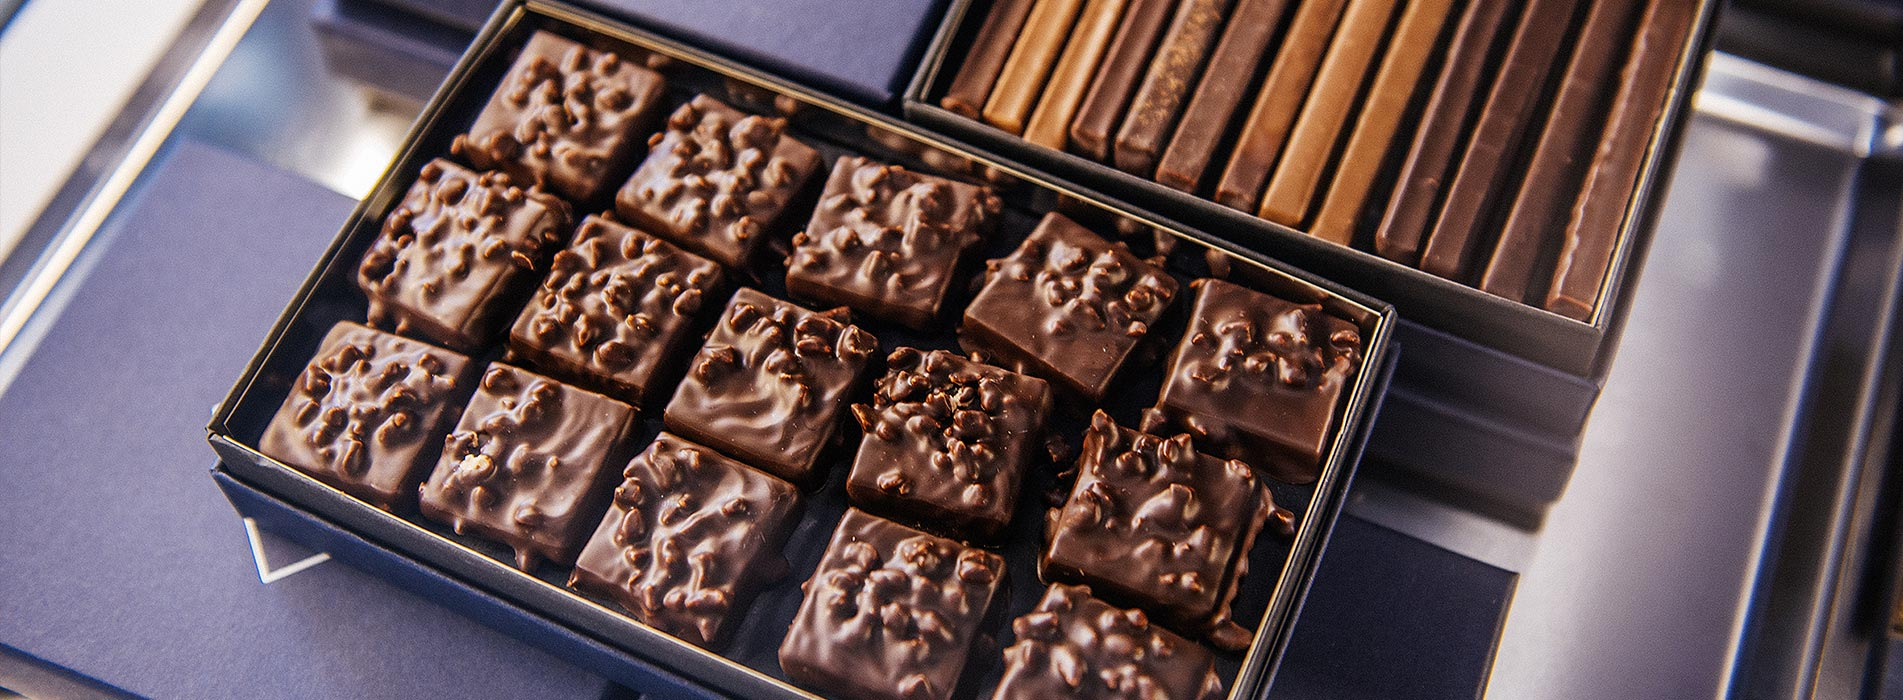 Slider section chocolats